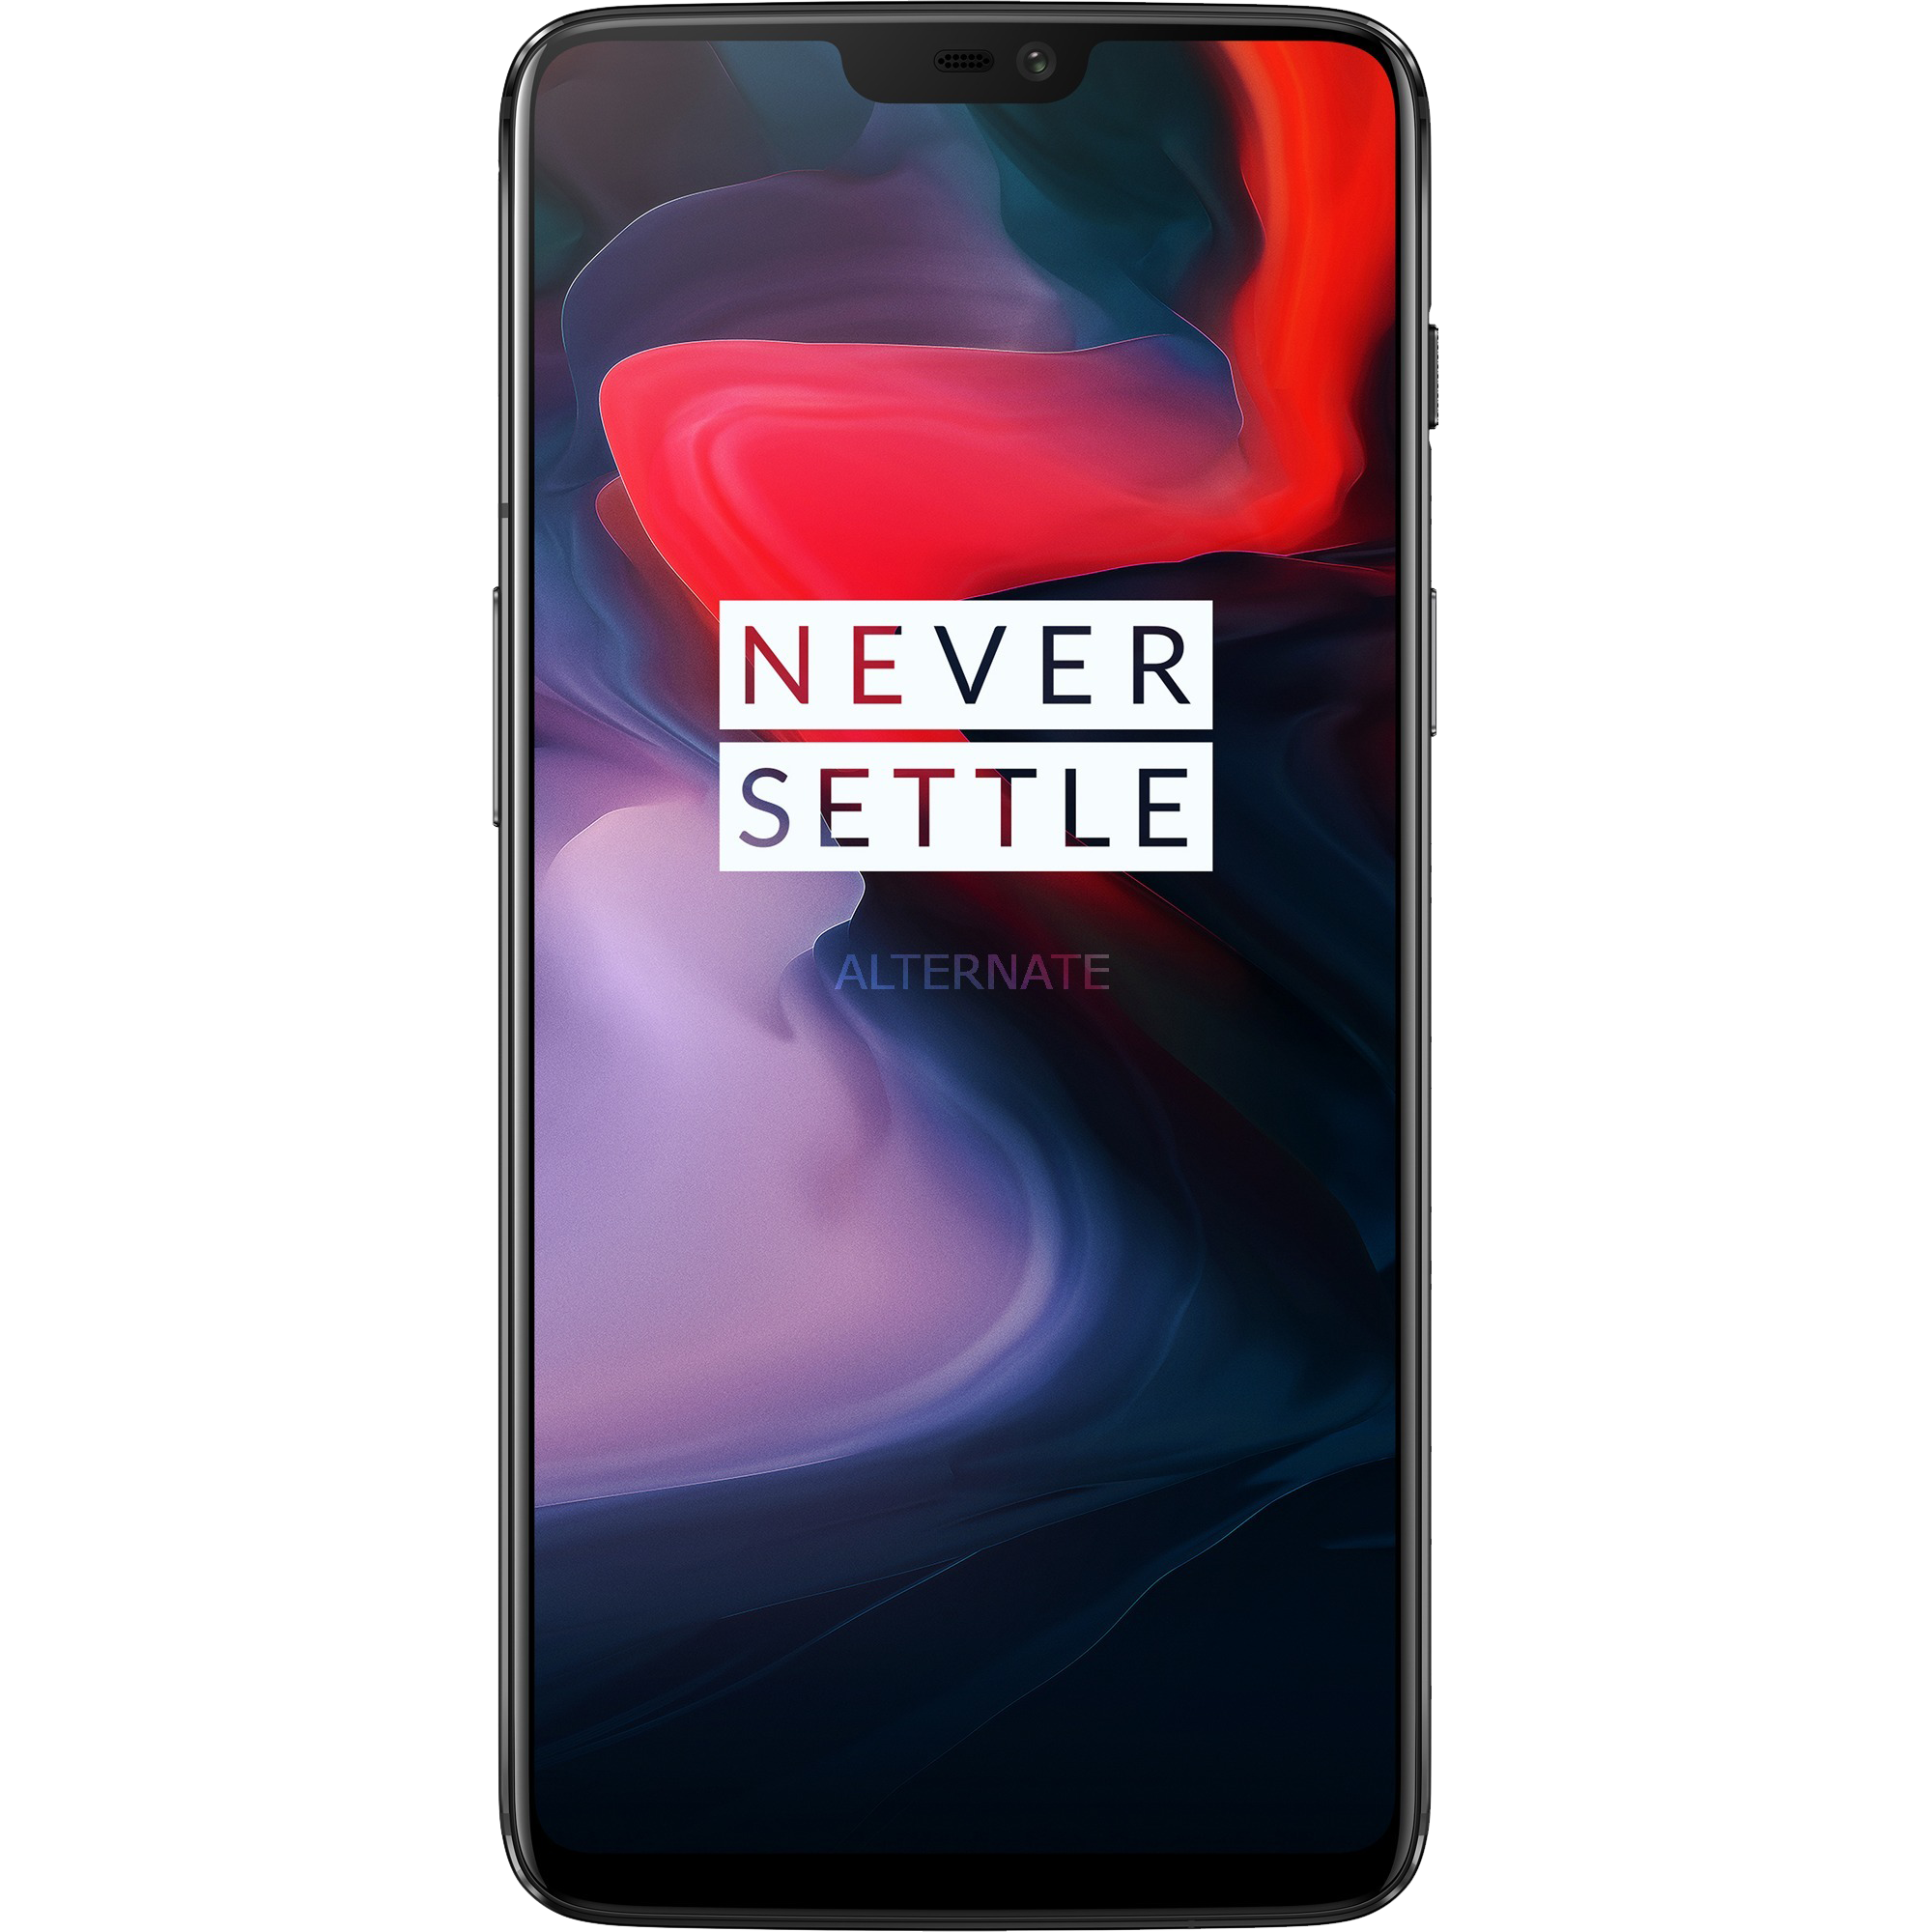 Oneplus 6t clipart clip art library download OnePlus 6 PNG Image - PurePNG | Free transparent CC0 PNG ... clip art library download